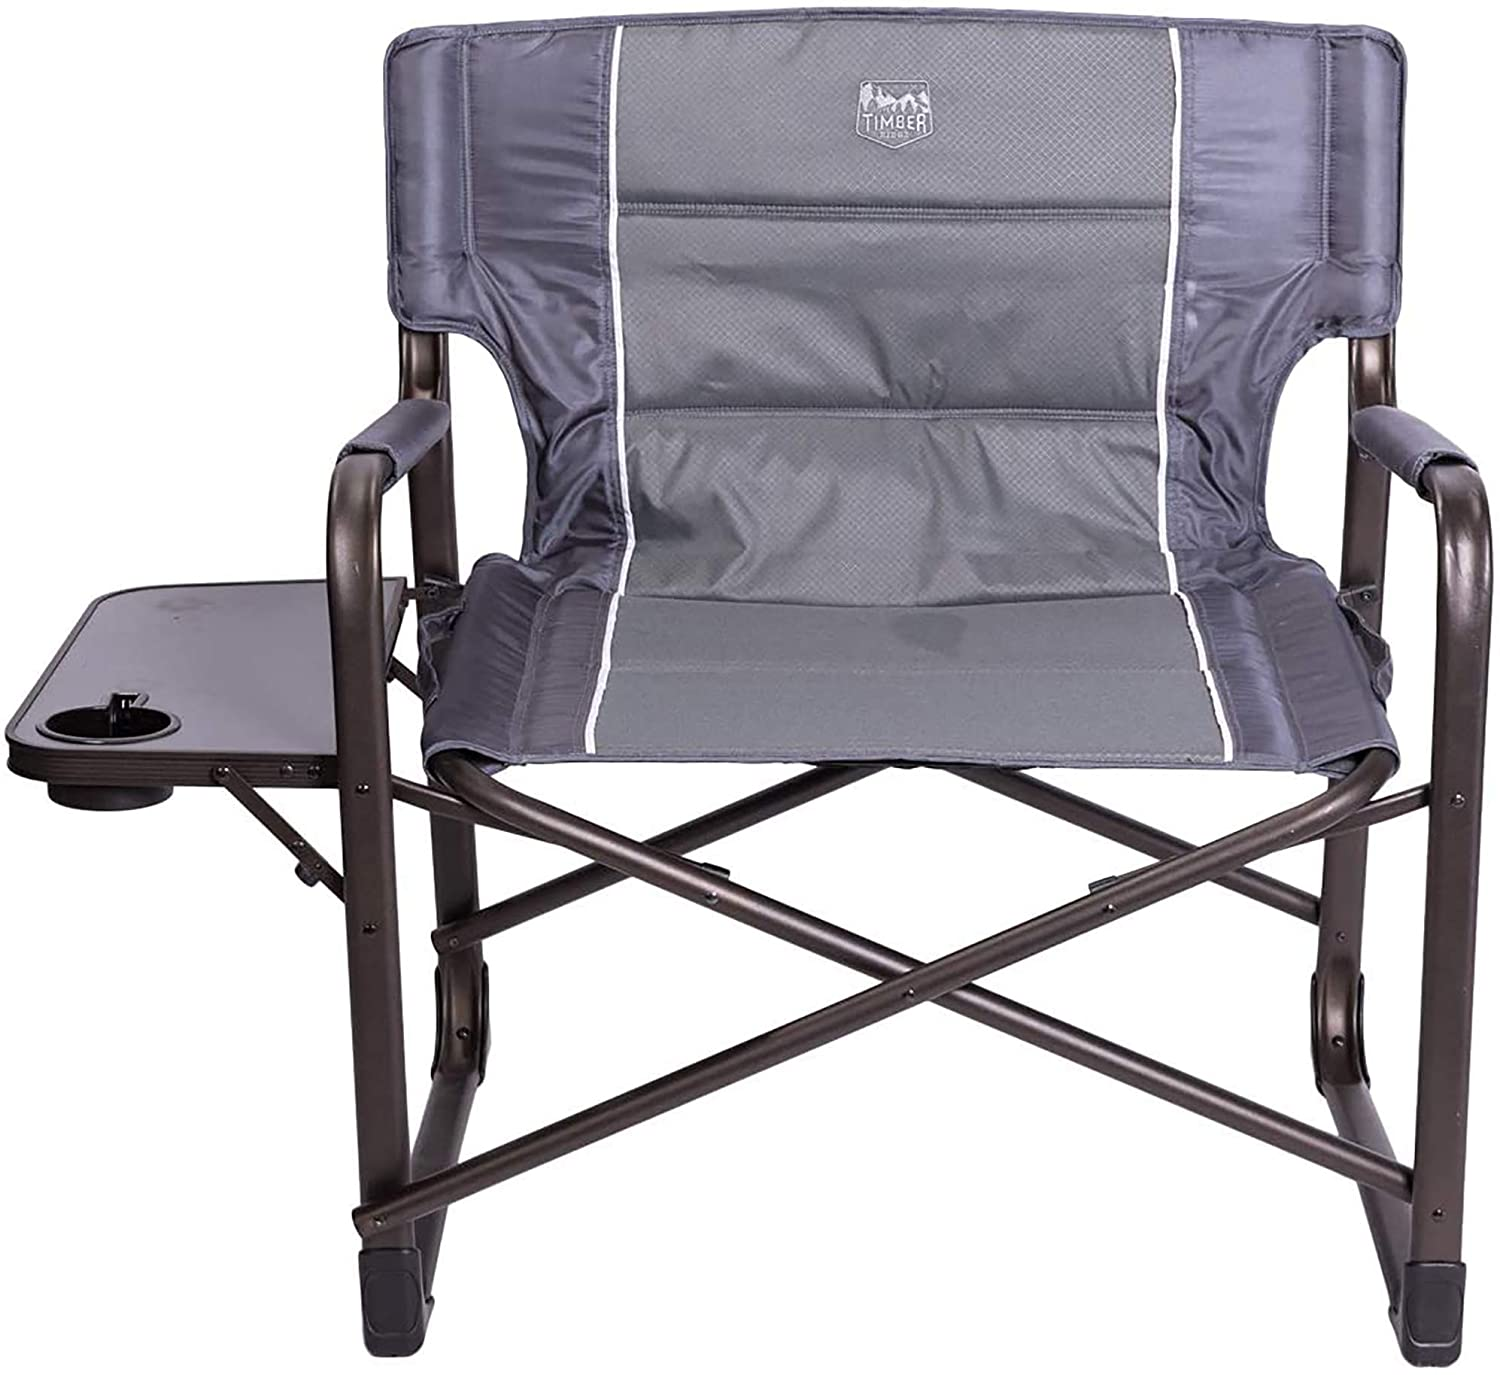 Coastrail Outdoor Oversized Director Chair 600lbs Heavy Duty for Camping 28 Wide Lawn Patio XXL Full Back Padded Camp Chair with Table /& Storage